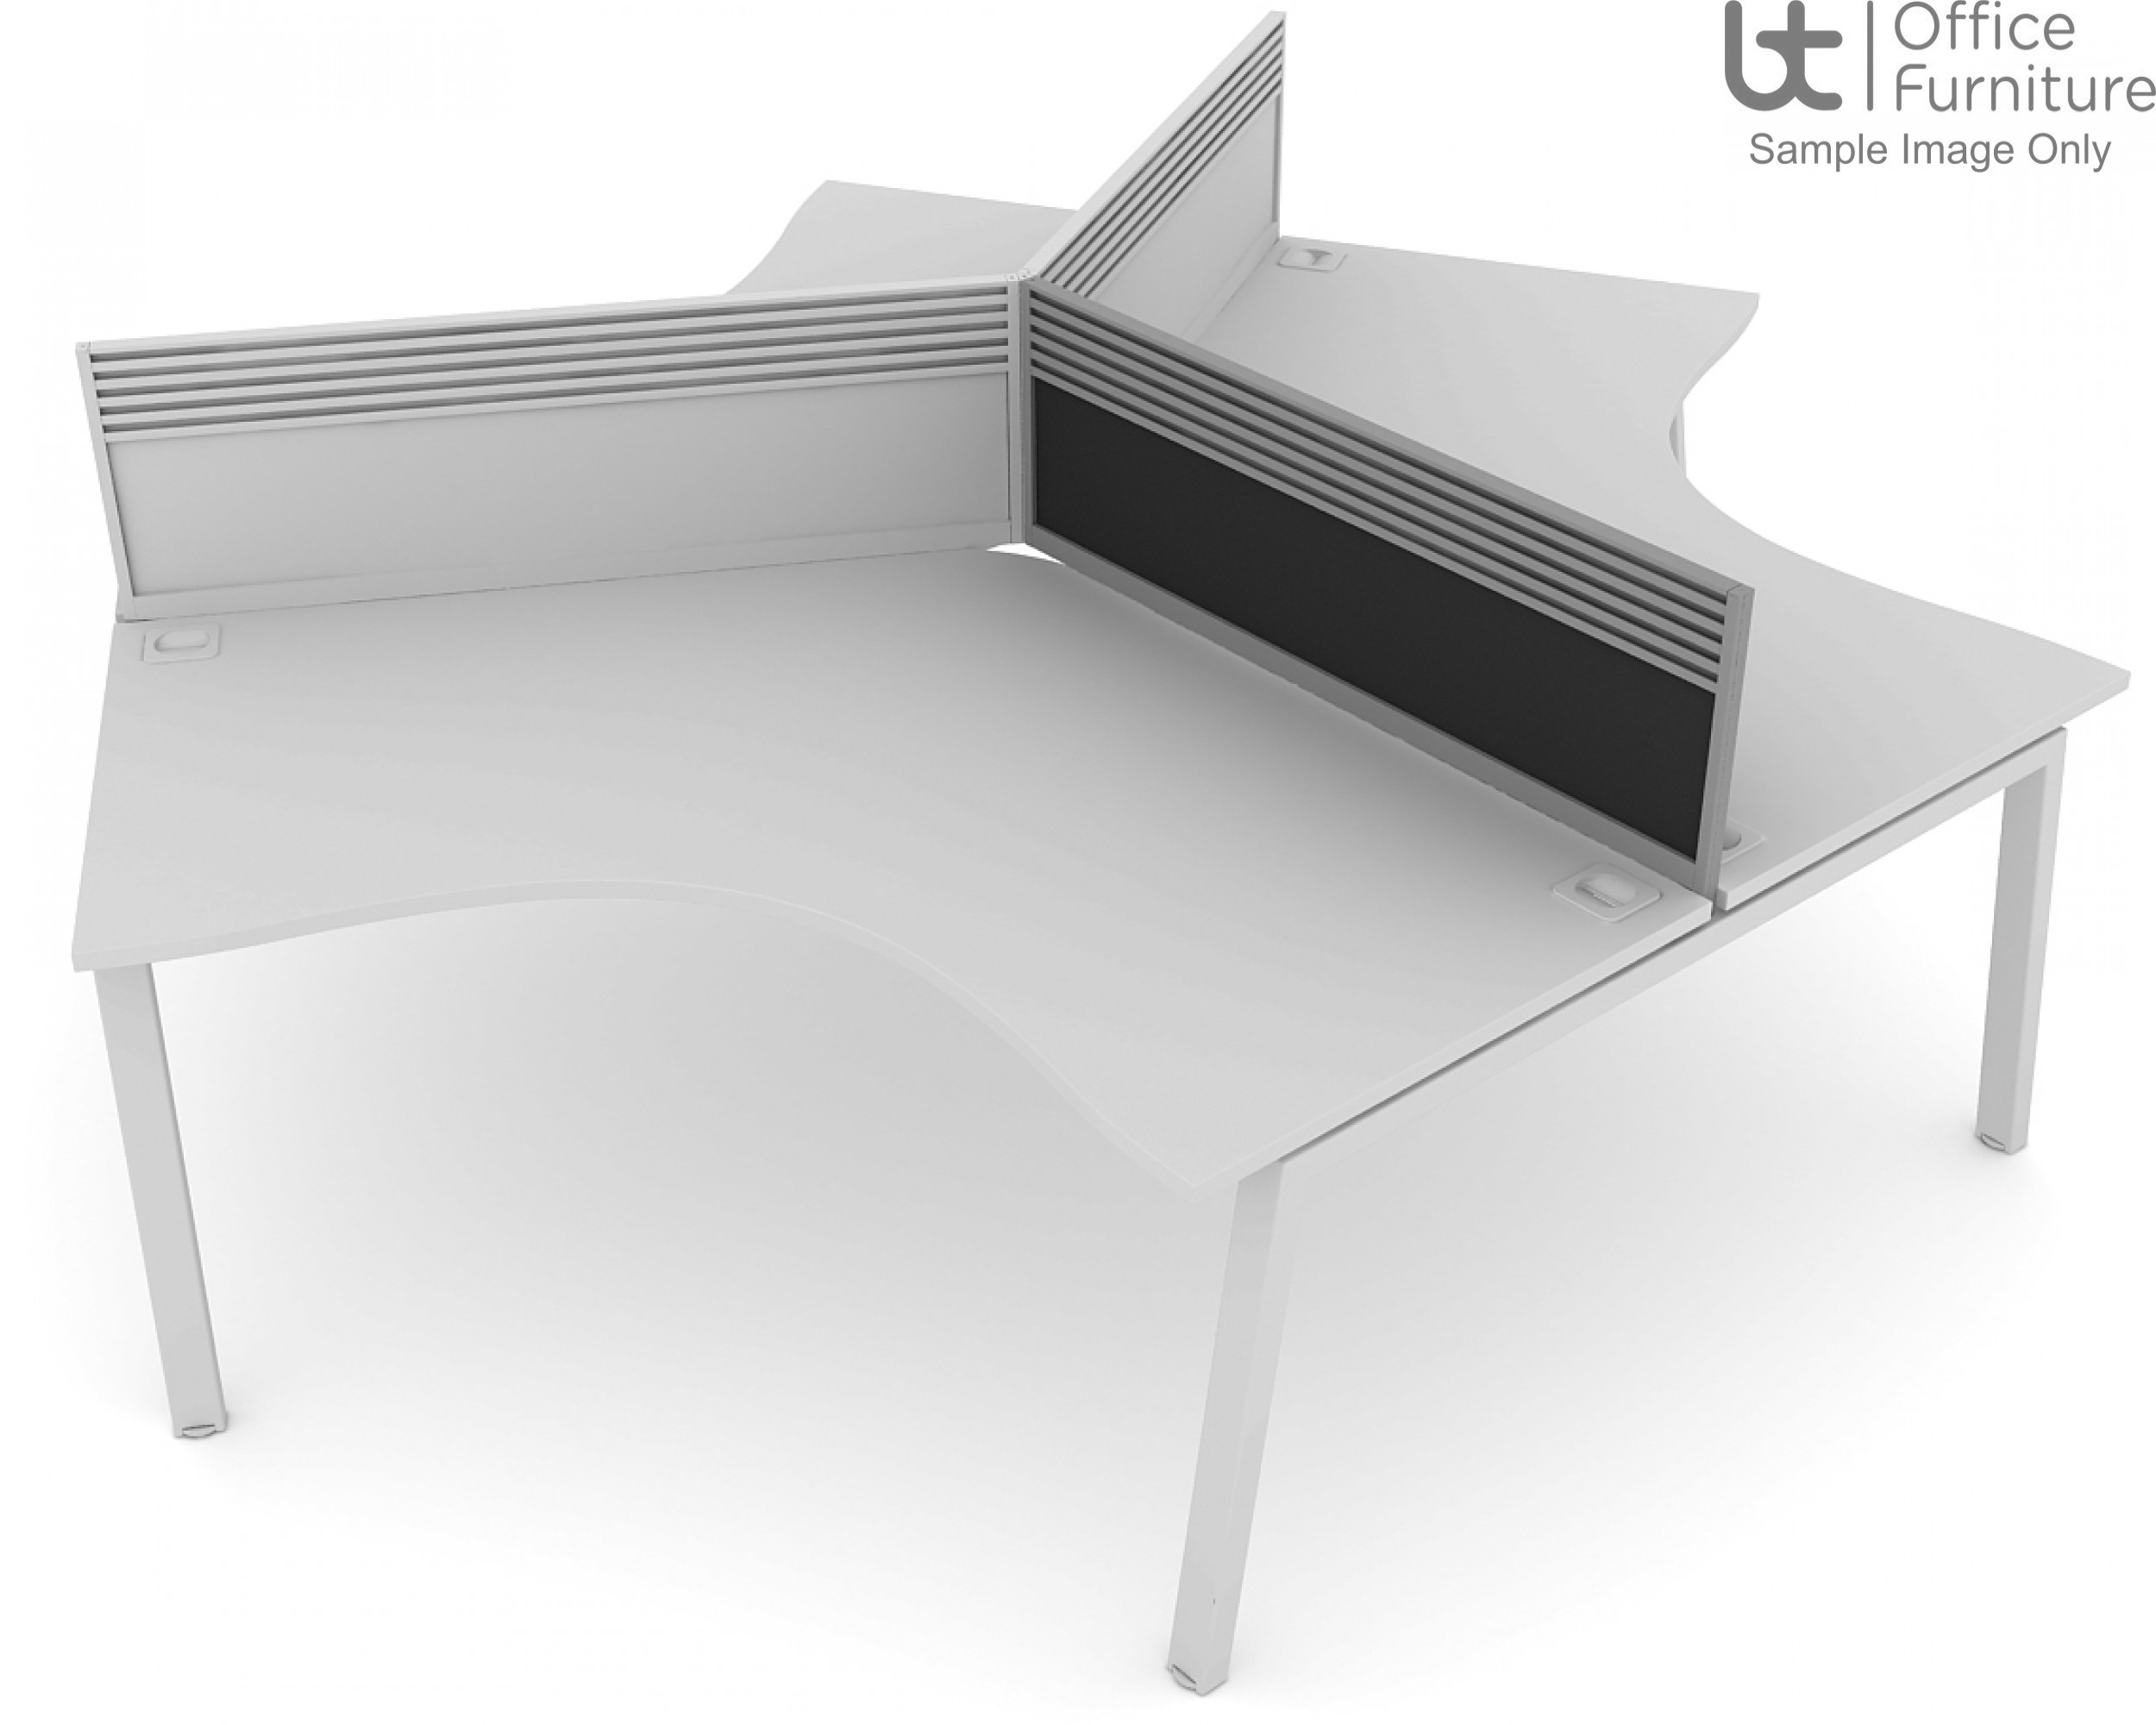 Elite Linnea System Screen - Fabric 120 Degree Screen with Management Rail